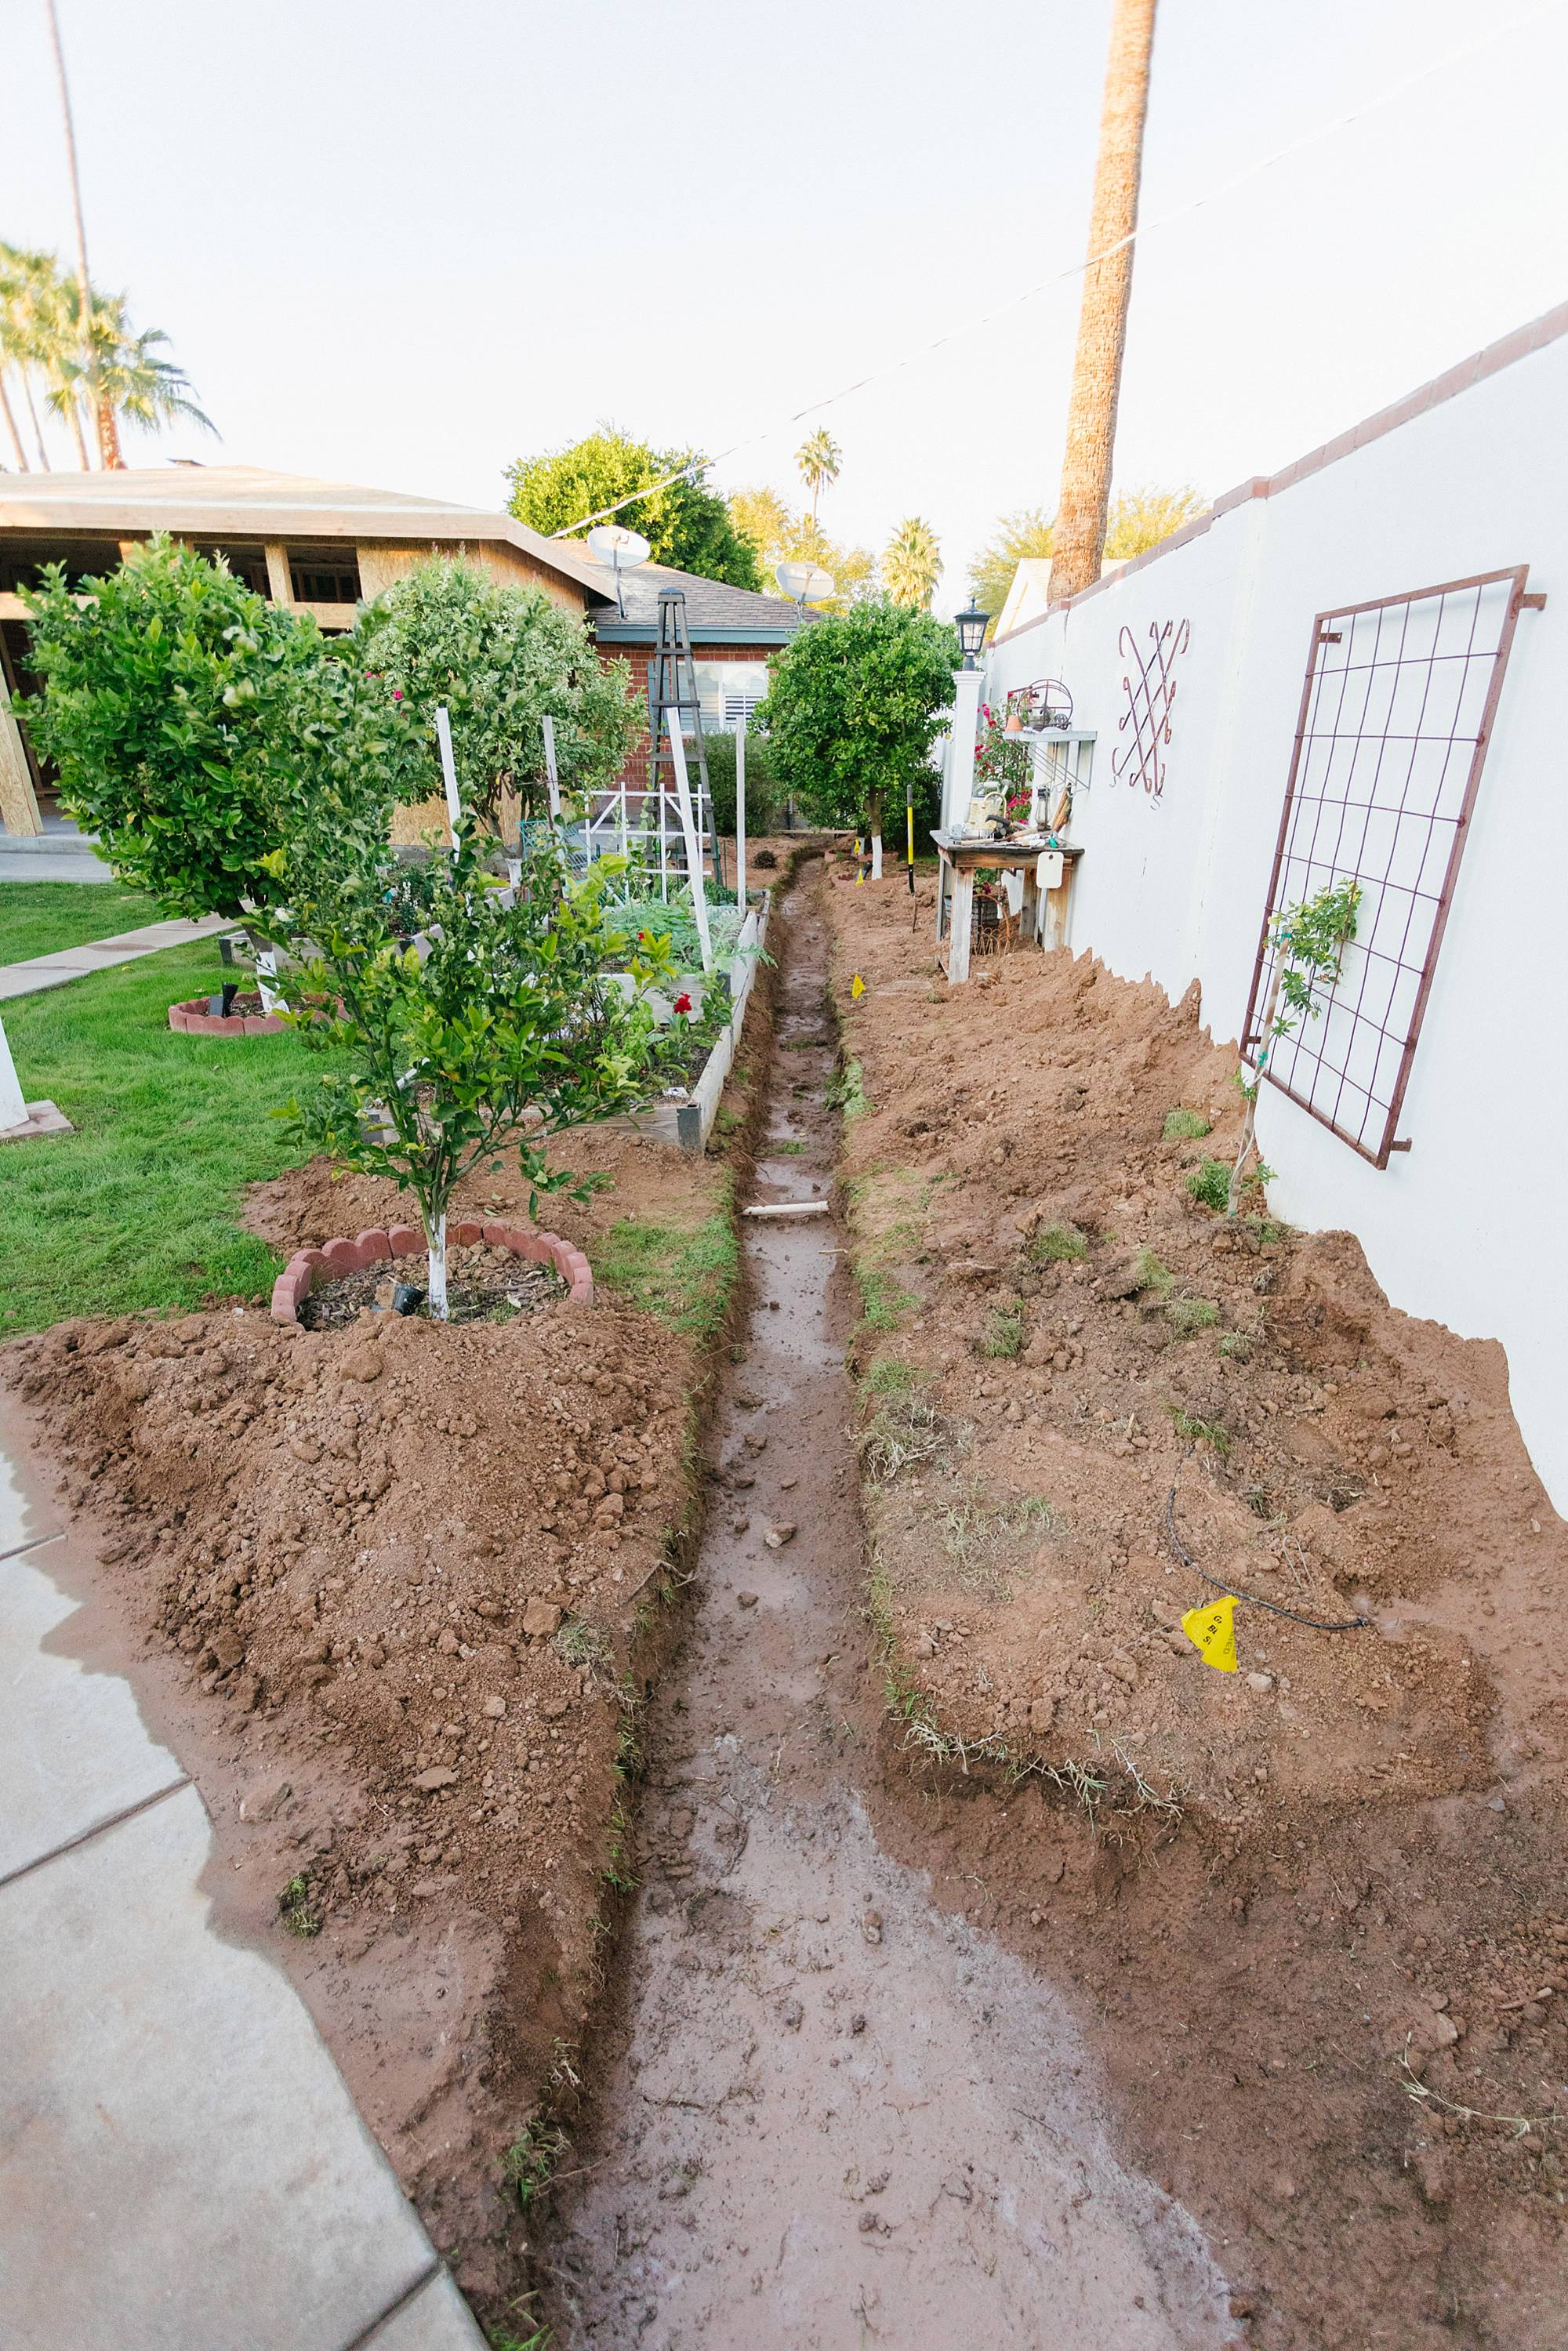 trench for SRP burying lines construction of home expansion in Phoenix Arizona